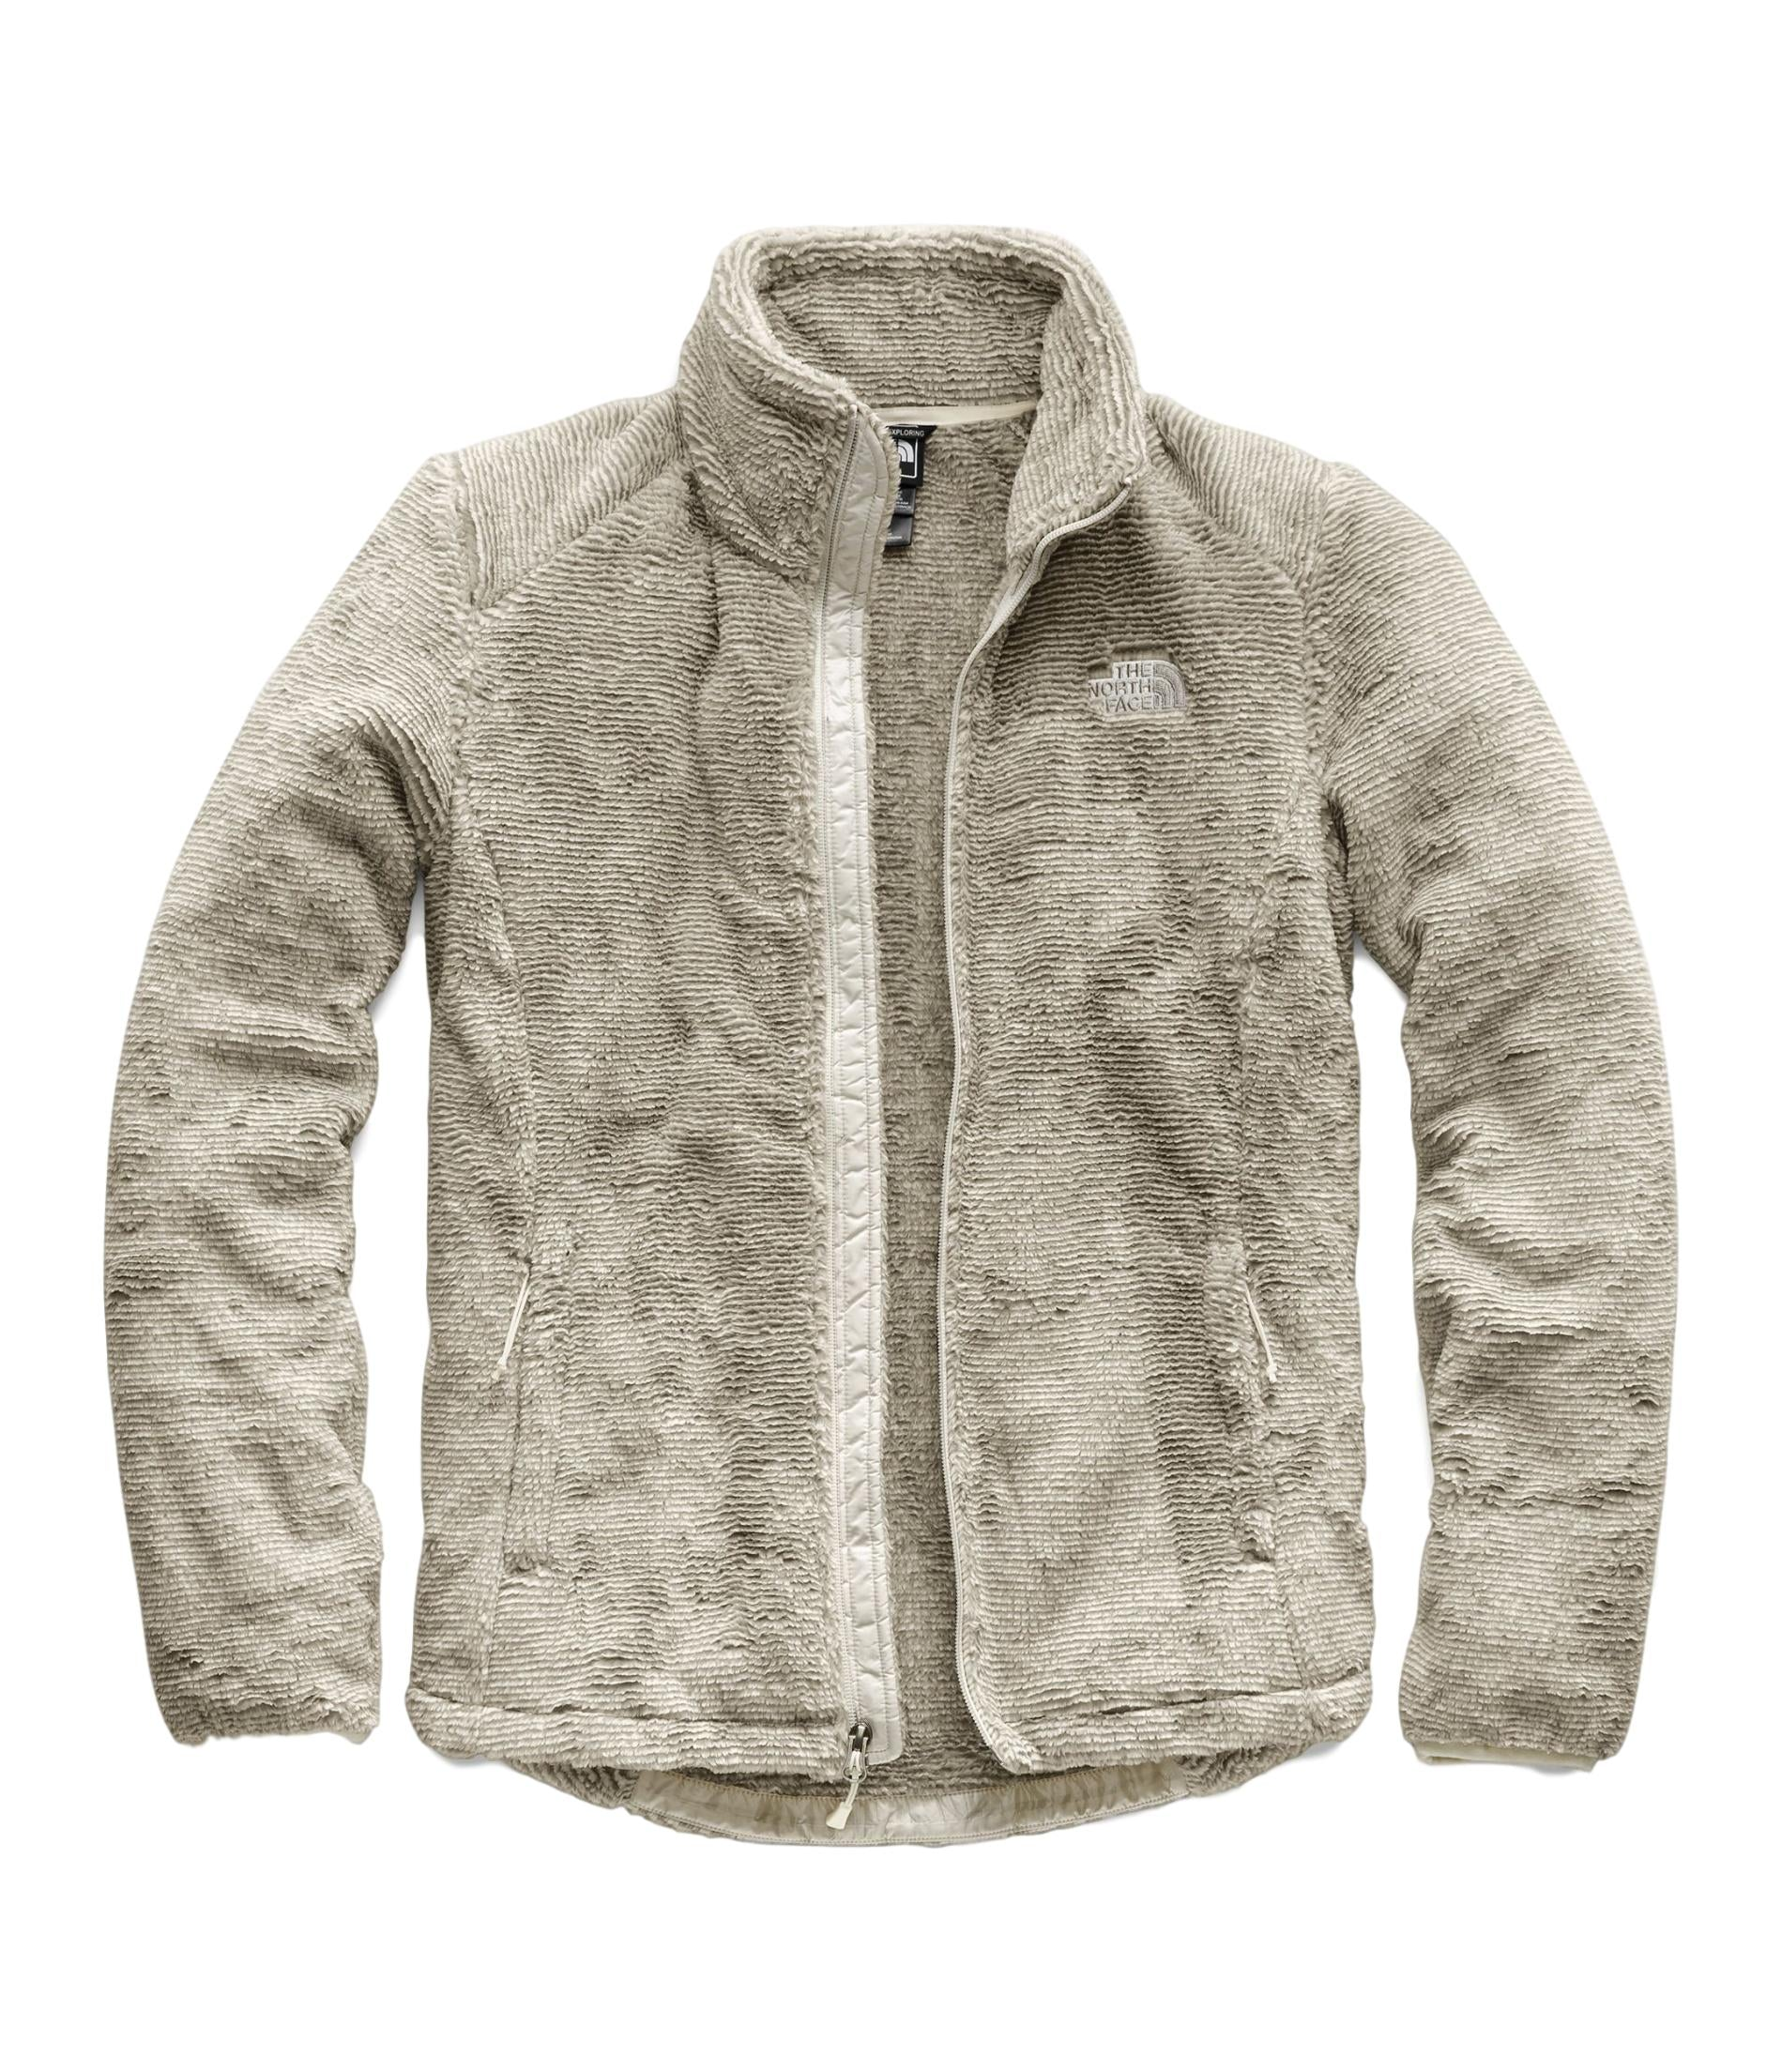 09c046132 The North Face Osito 2 Jacket - Women's